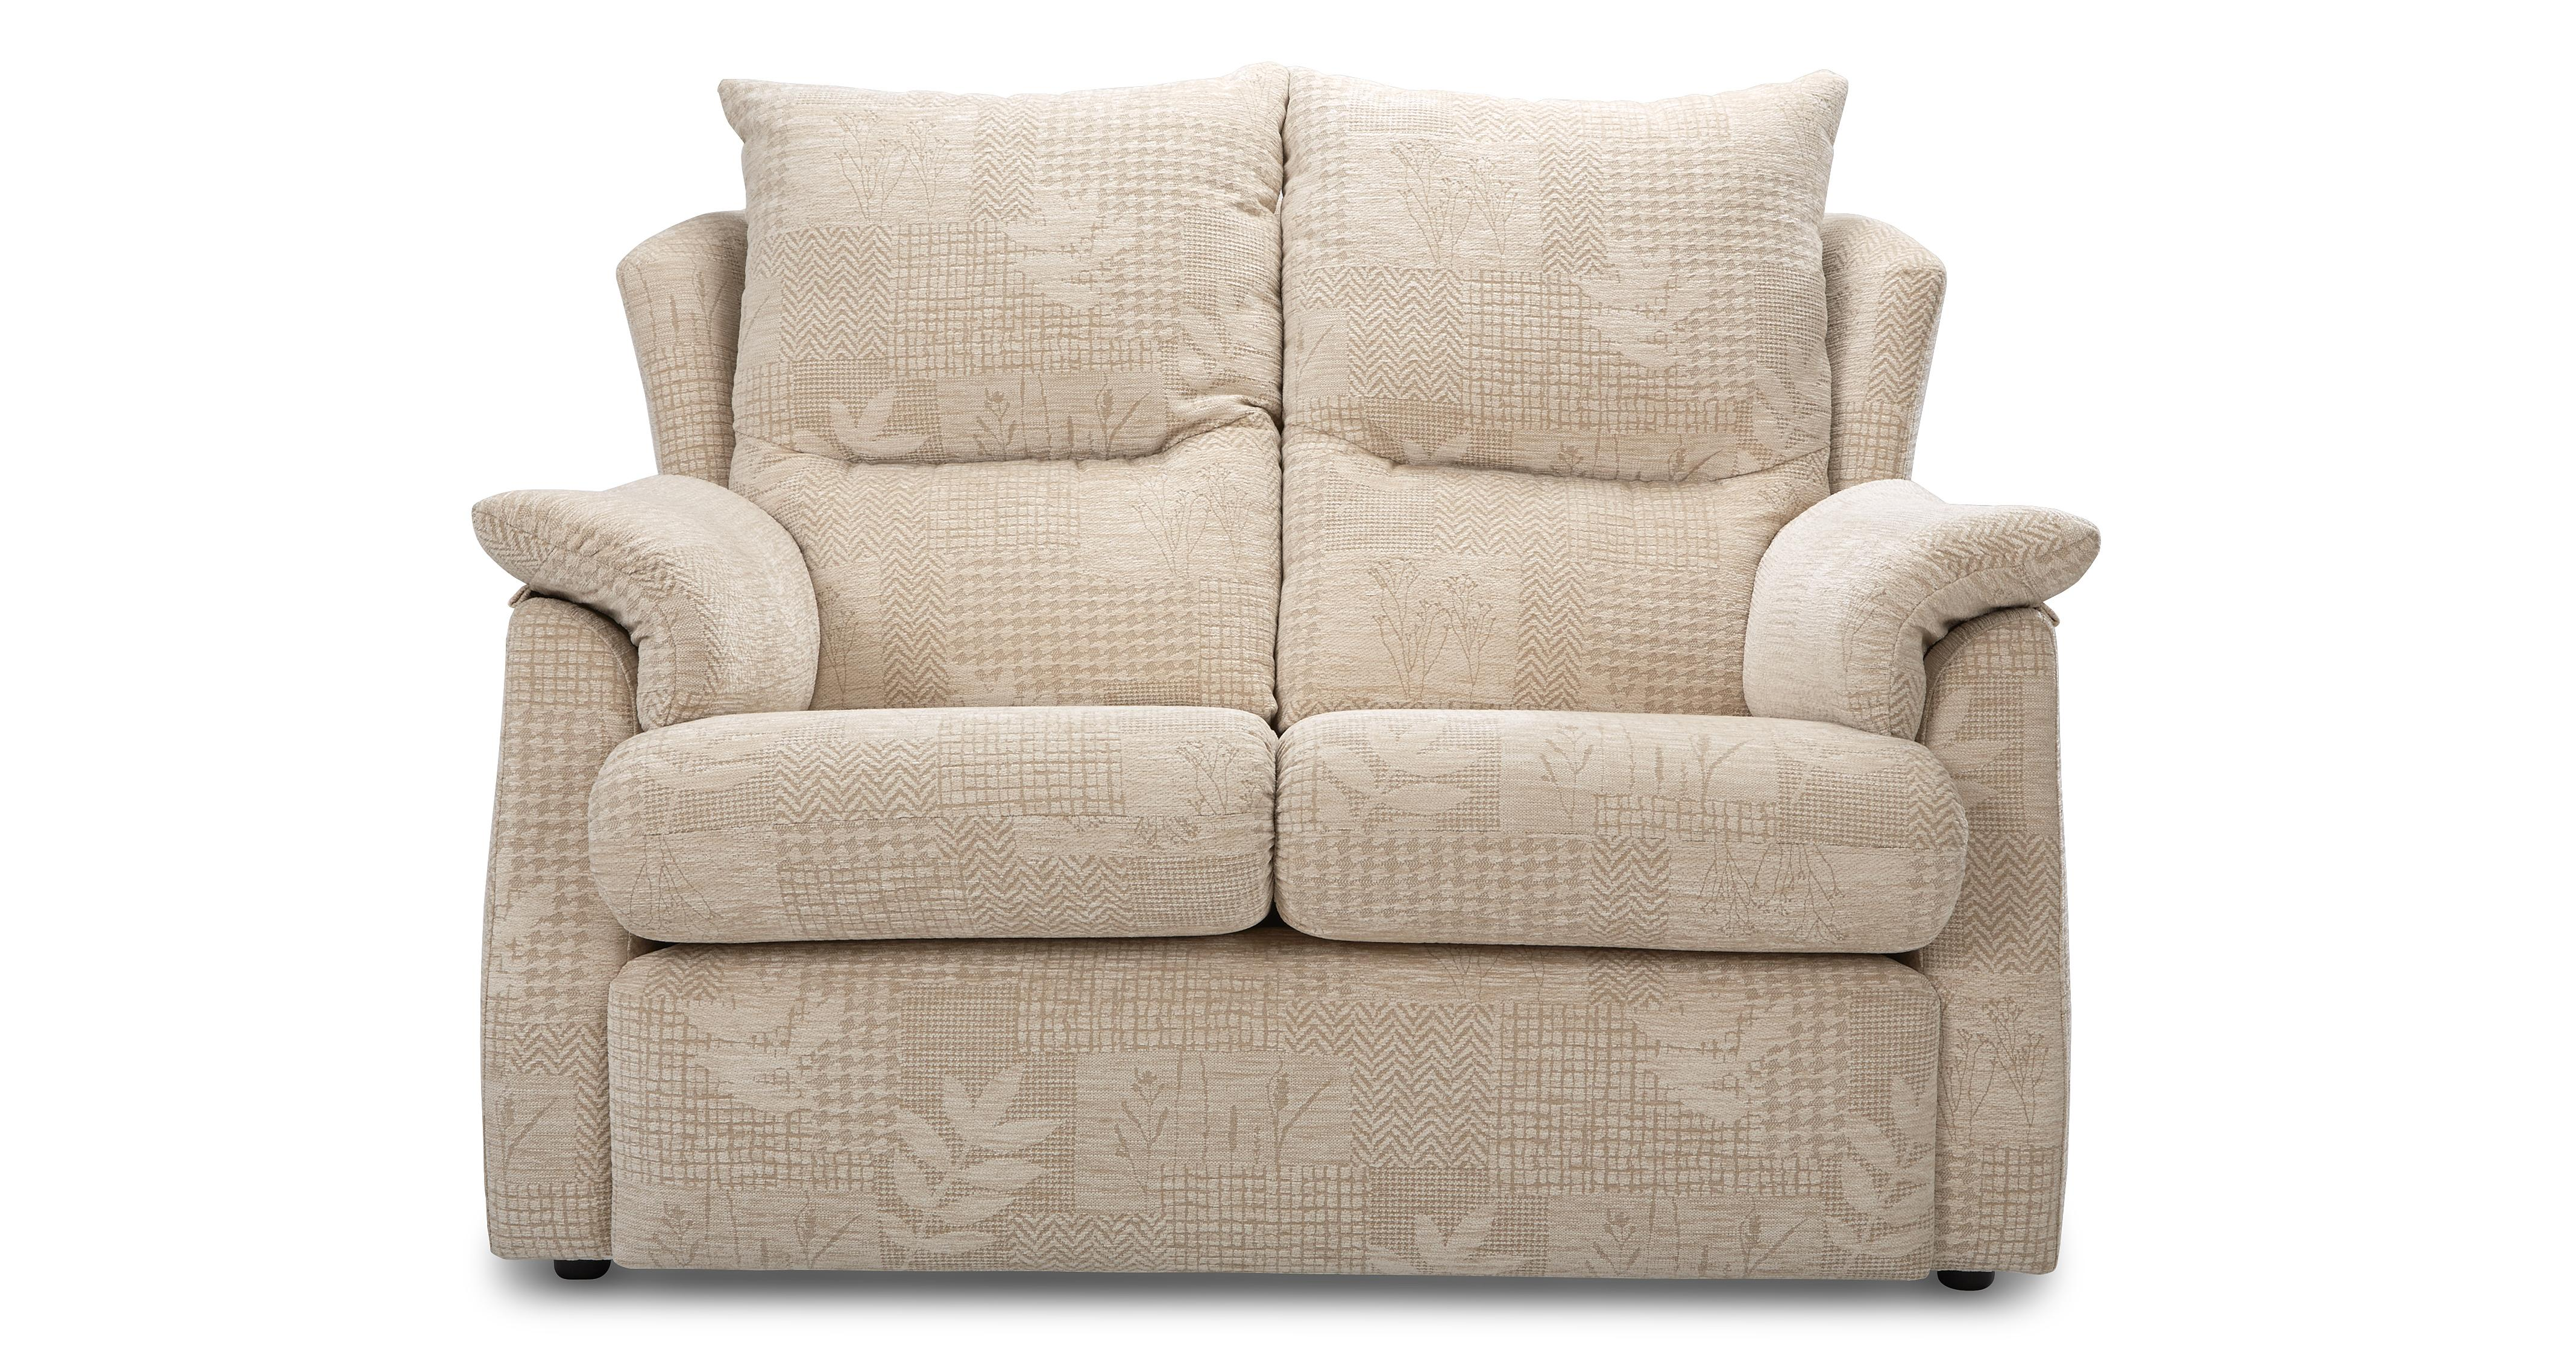 Stow Fabric C Small 2 Seater Sofa G Plan Fabric C